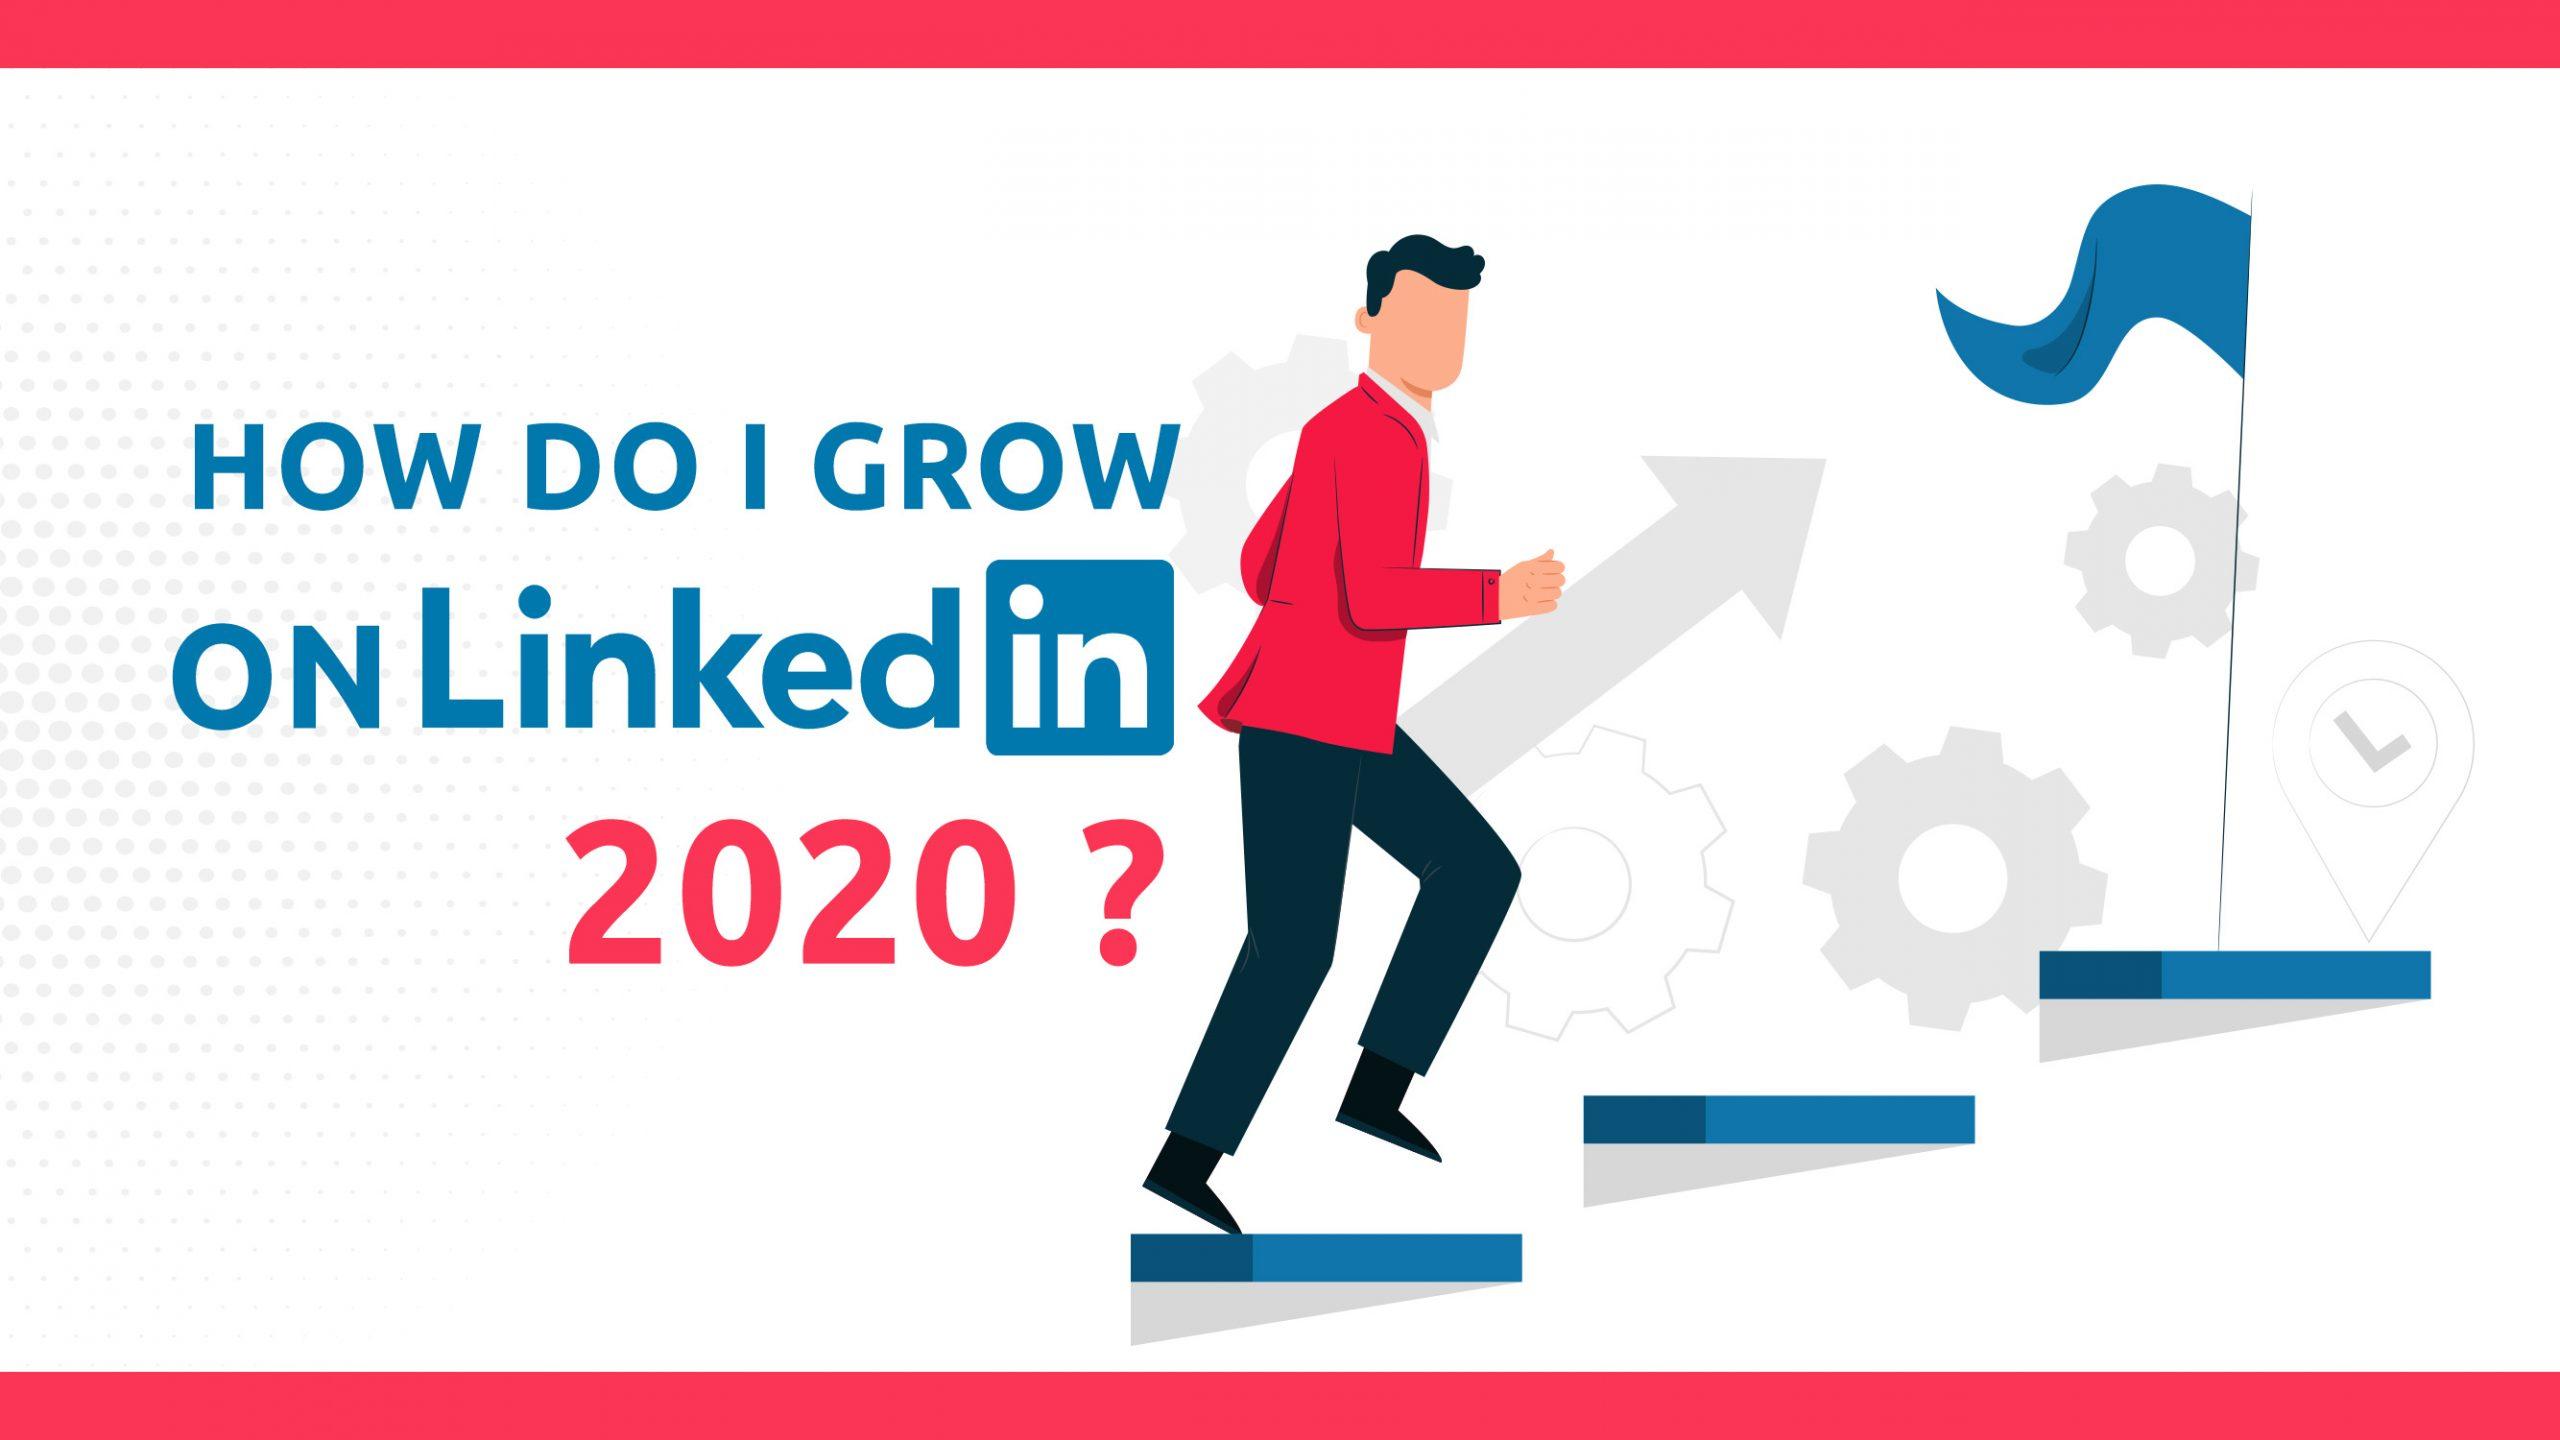 How Do I Grow On LinkedIn 2020?